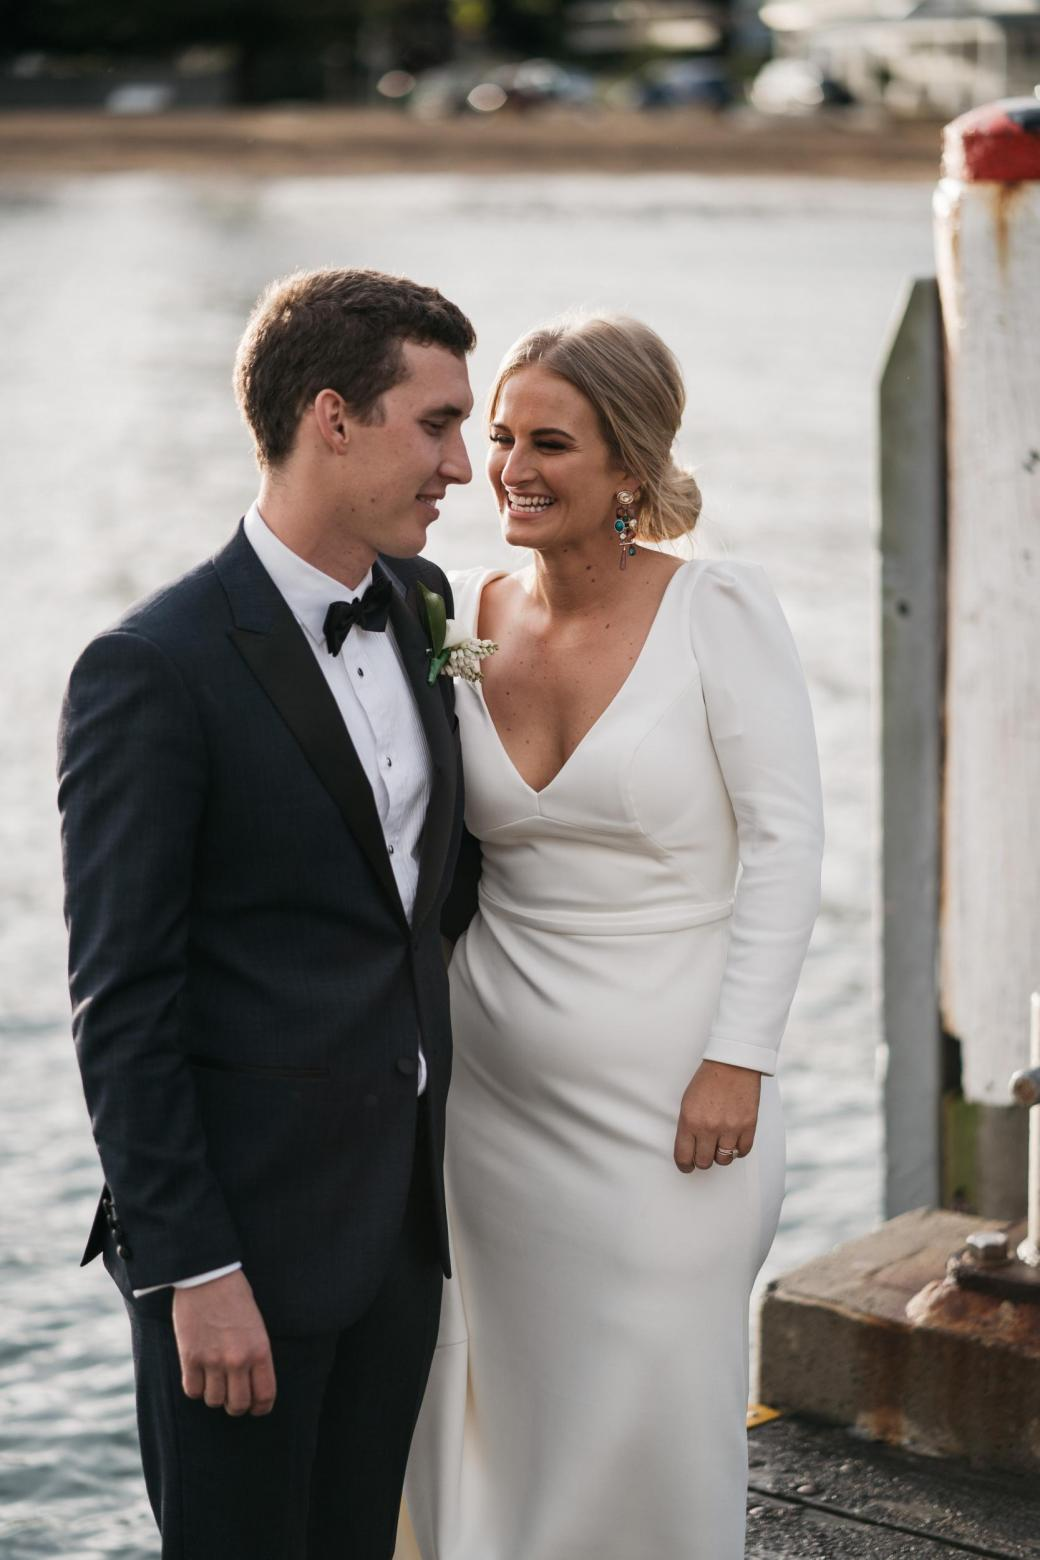 KWH bride Jordana with her new husband; wearing the AUBREY gown; a timeless long-sleeve wedding dress.